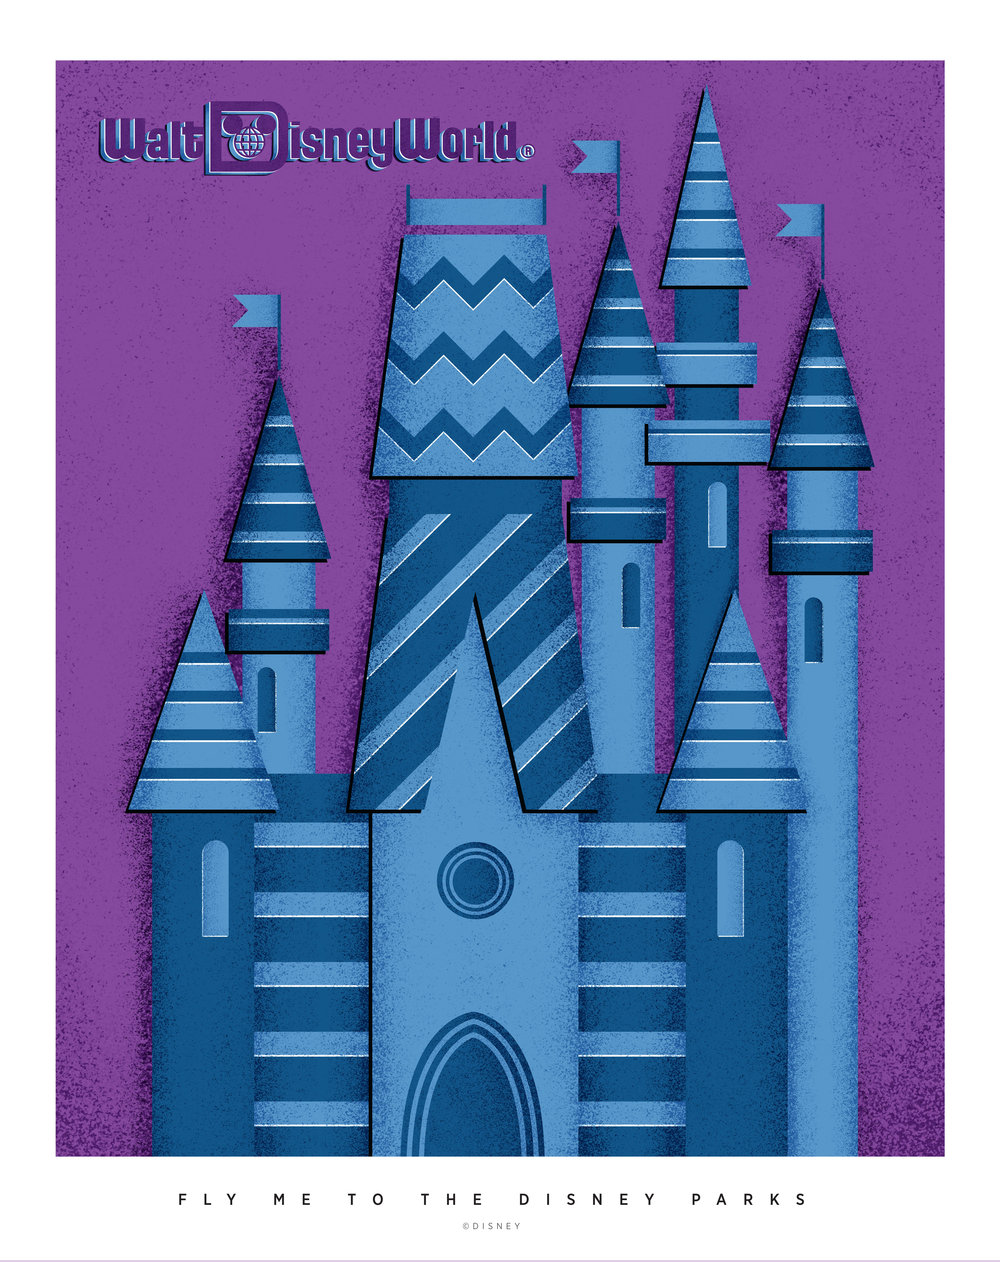 Walt Disney World travel poster (click to enlarge)